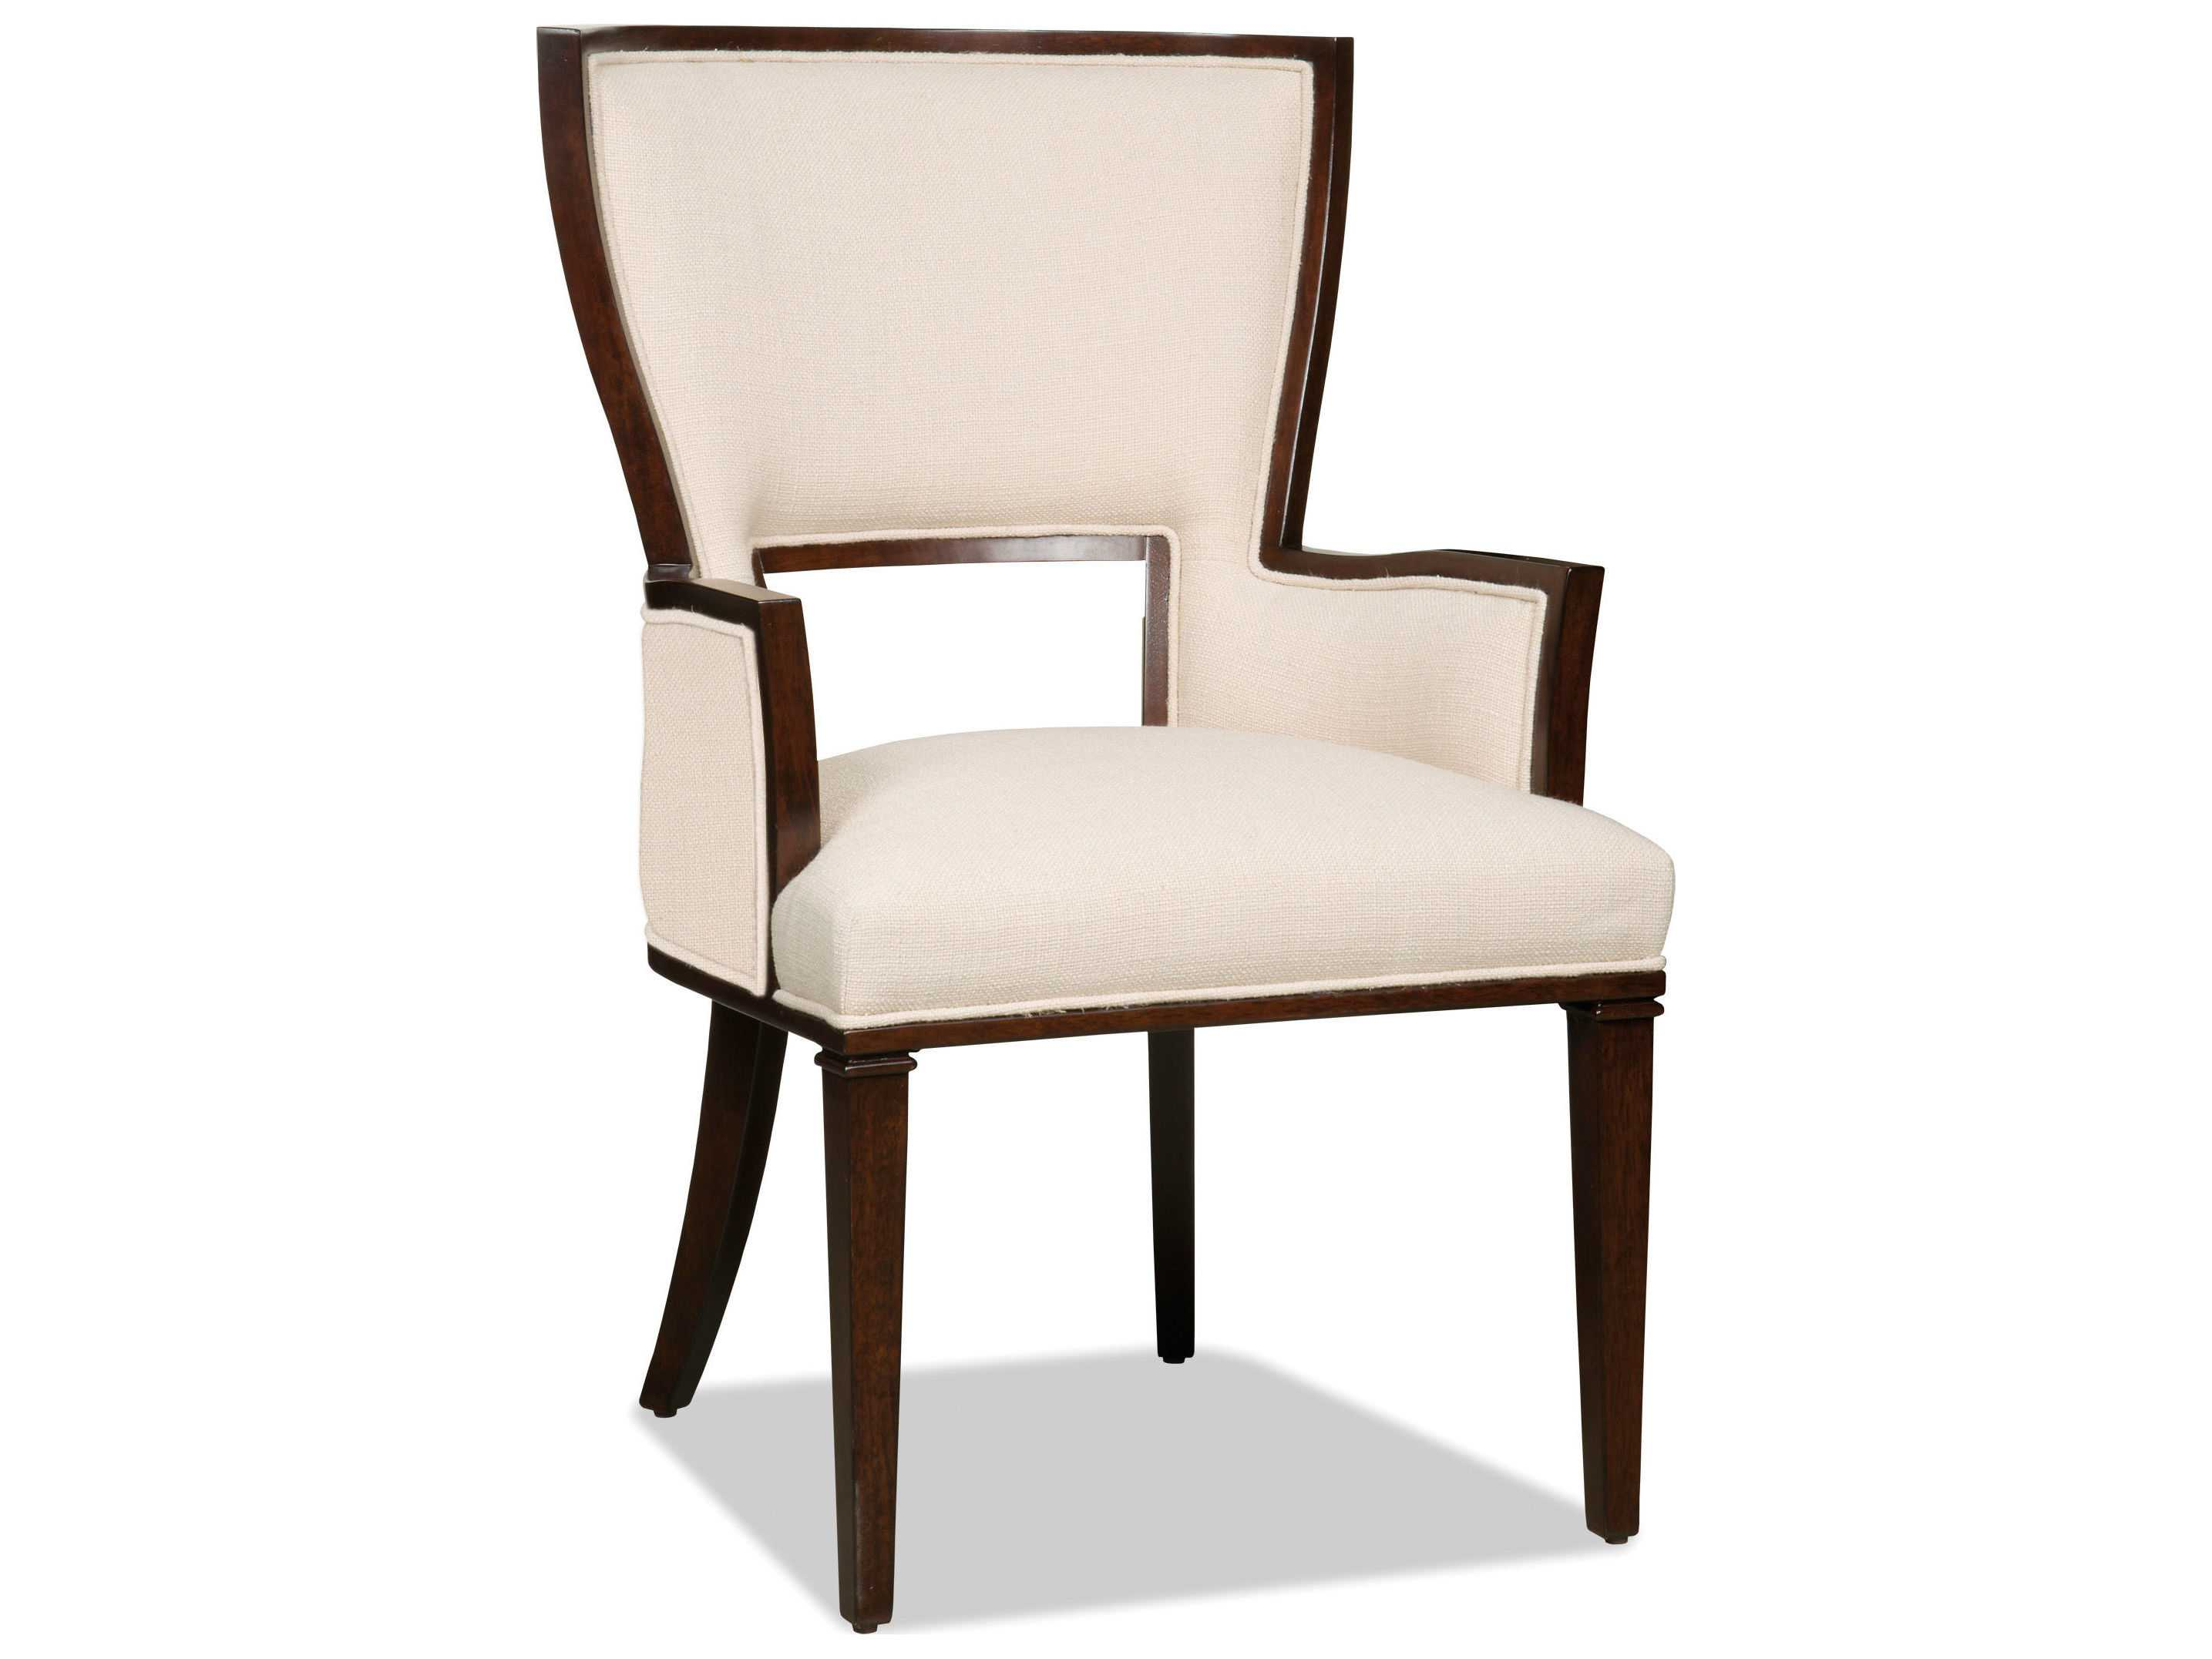 Hooker furniture lindy natural dark wood dining arm chair